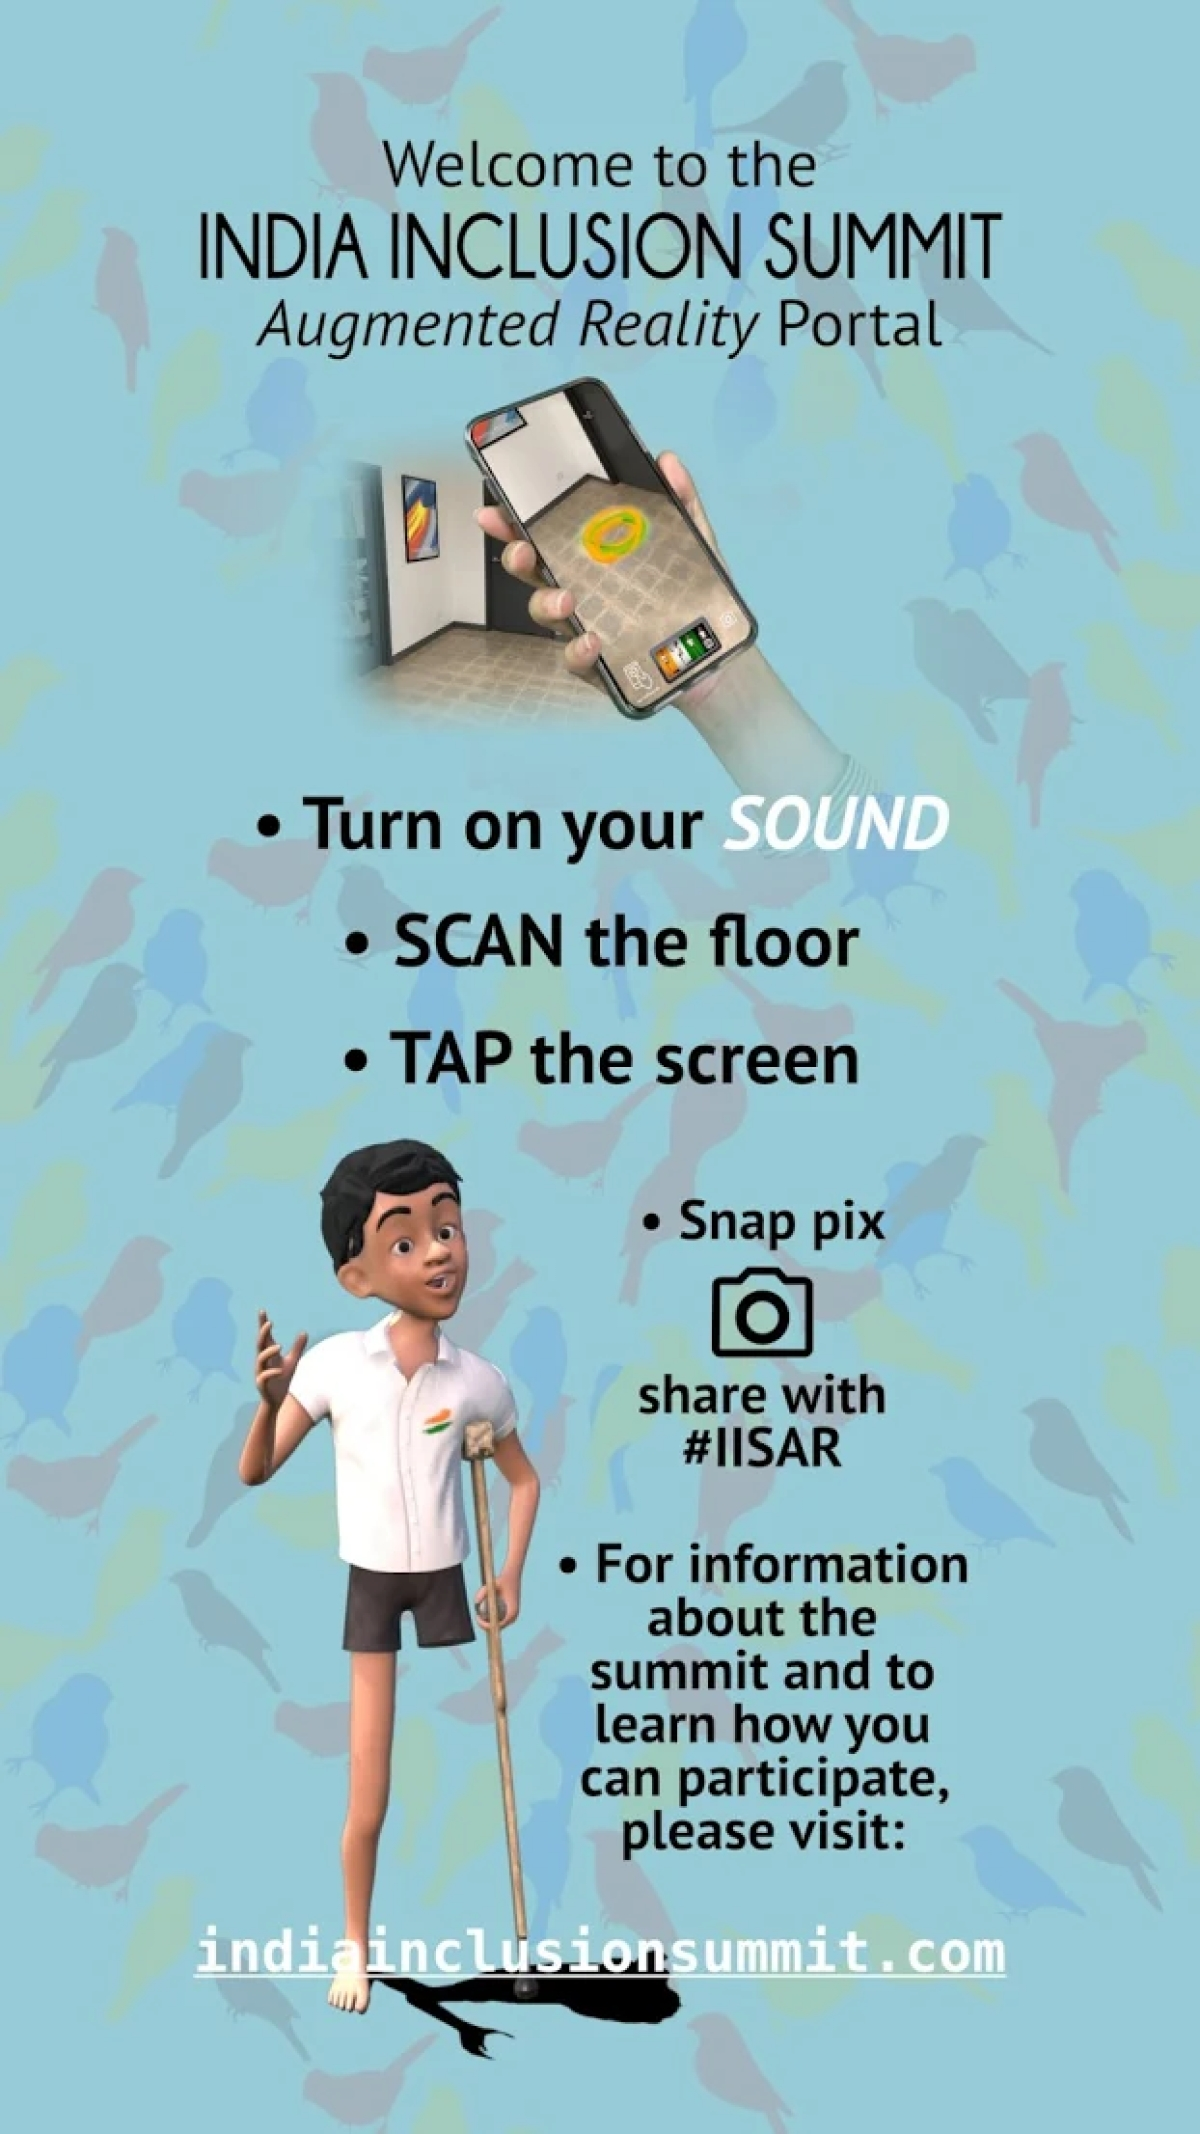 How you can take a picture with Inclu - the mascot of India Inclusion